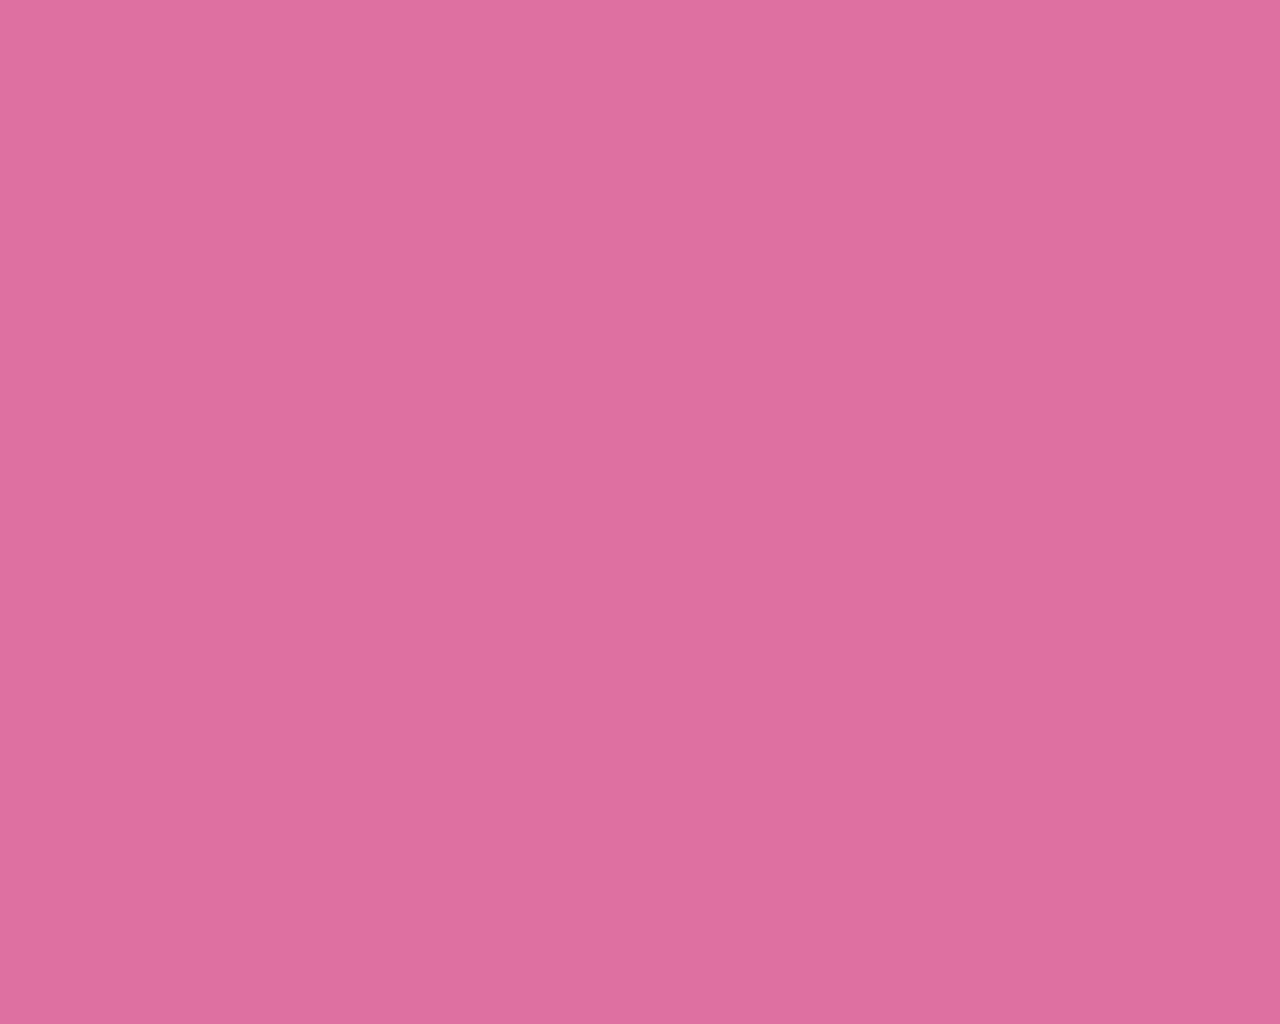 1280x1024 China Pink Solid Color Background